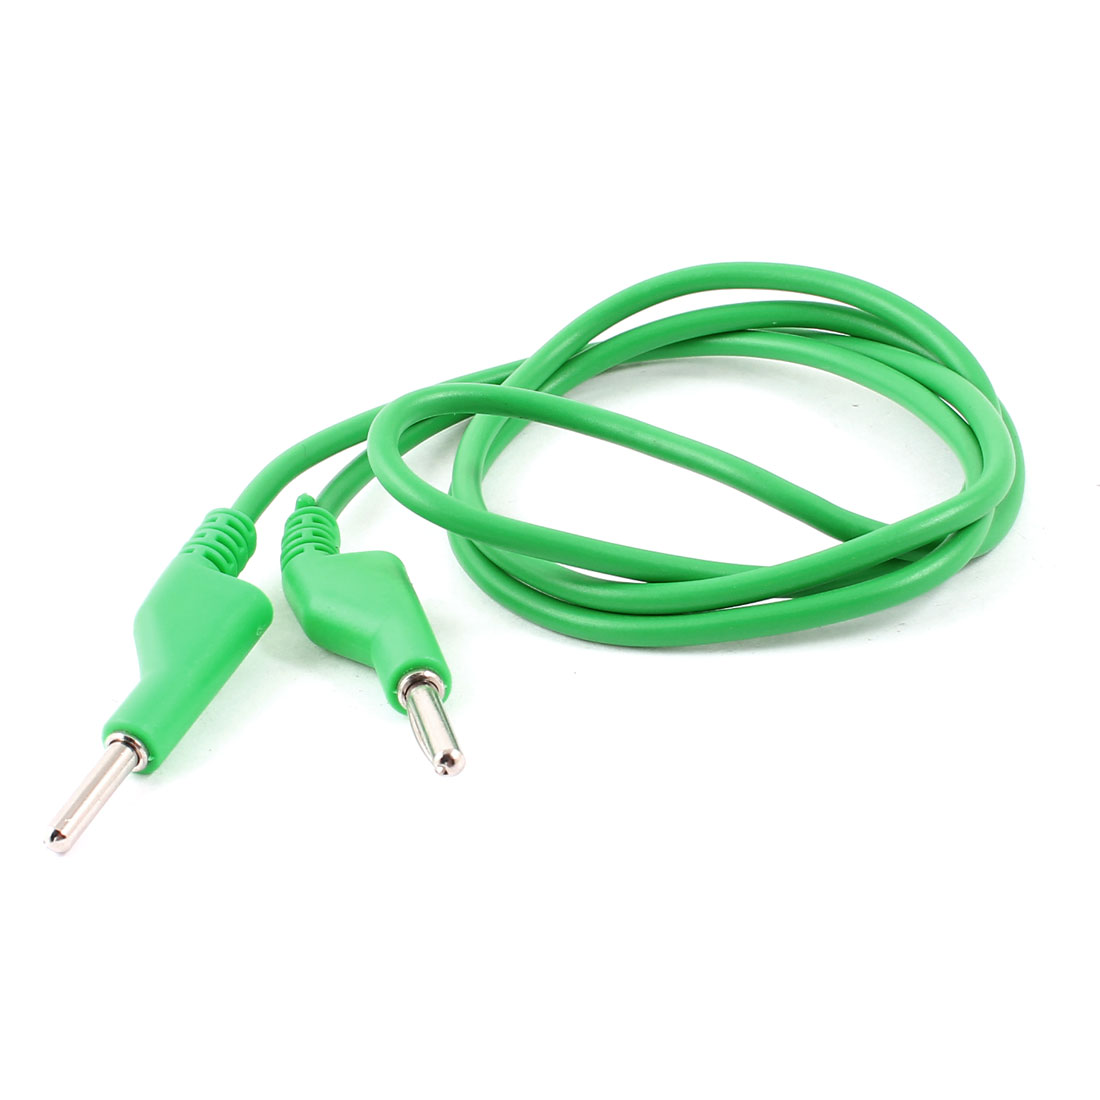 Physics Lab Multimeter Dual 4mm Banana Connector Probe Test Cable 1M Long Green